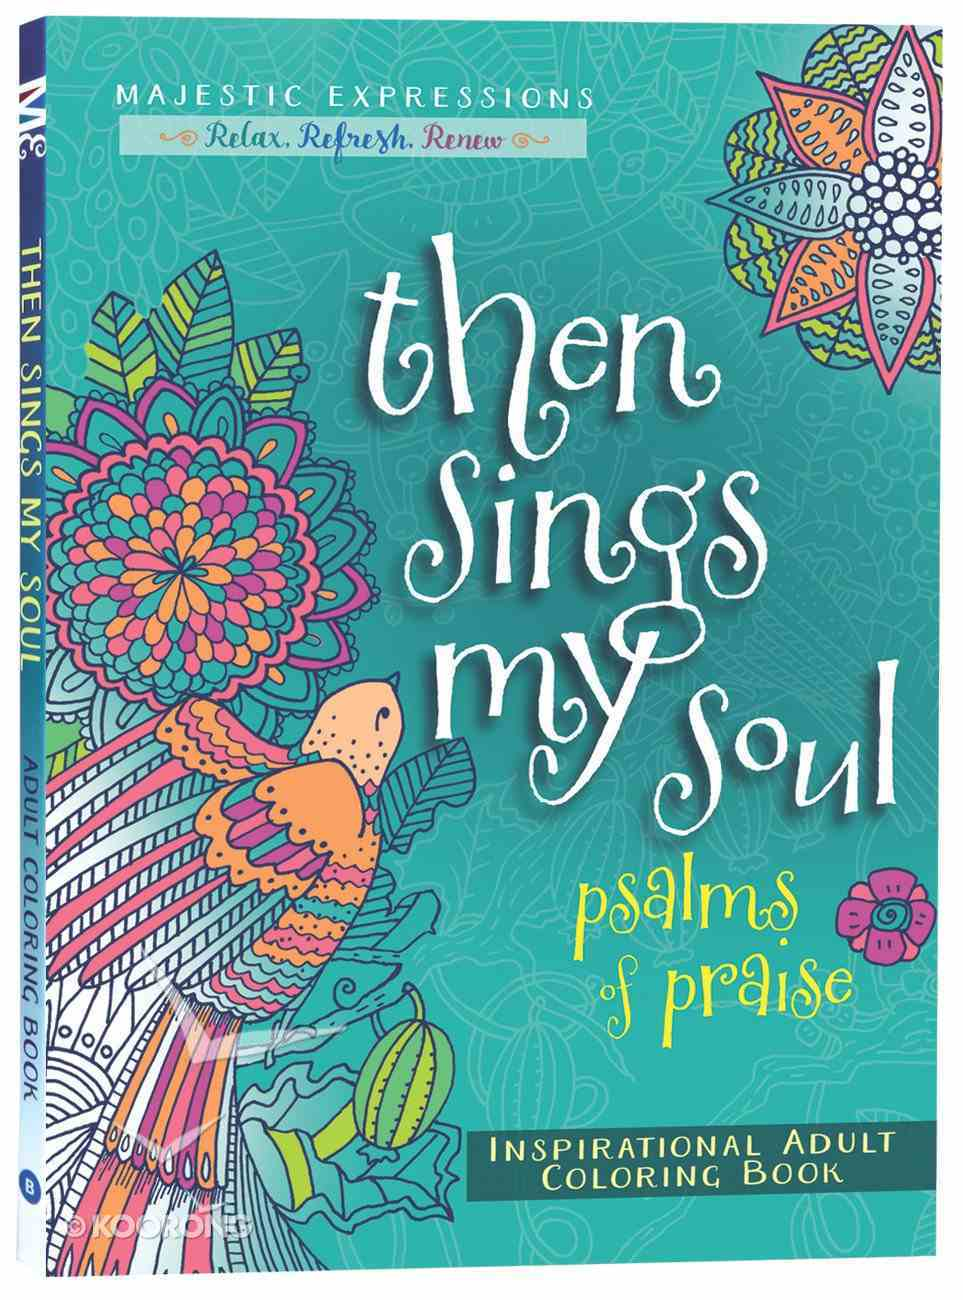 Then Sings My Soul - Psalms of Praise (Majestic Expressions) (Adult Coloring Books Series) Paperback